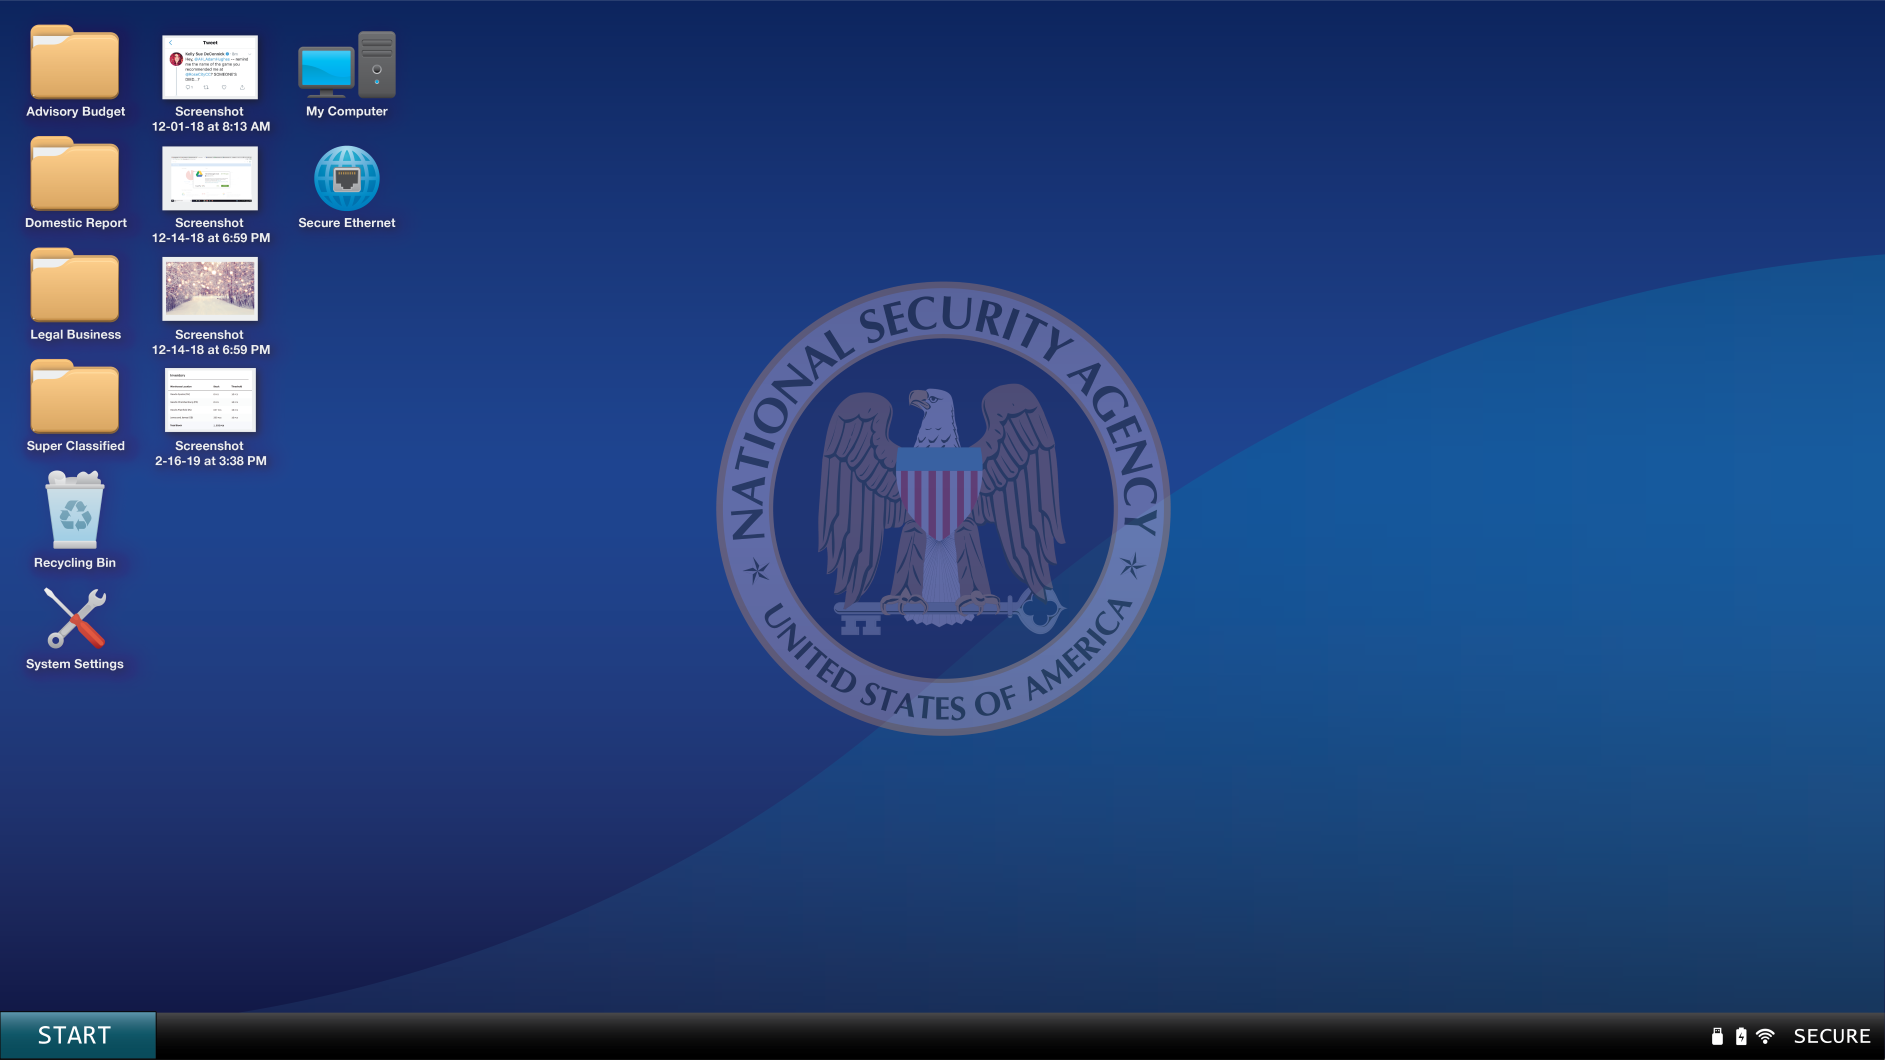 nsa monitors v2_Desktop 4web.png